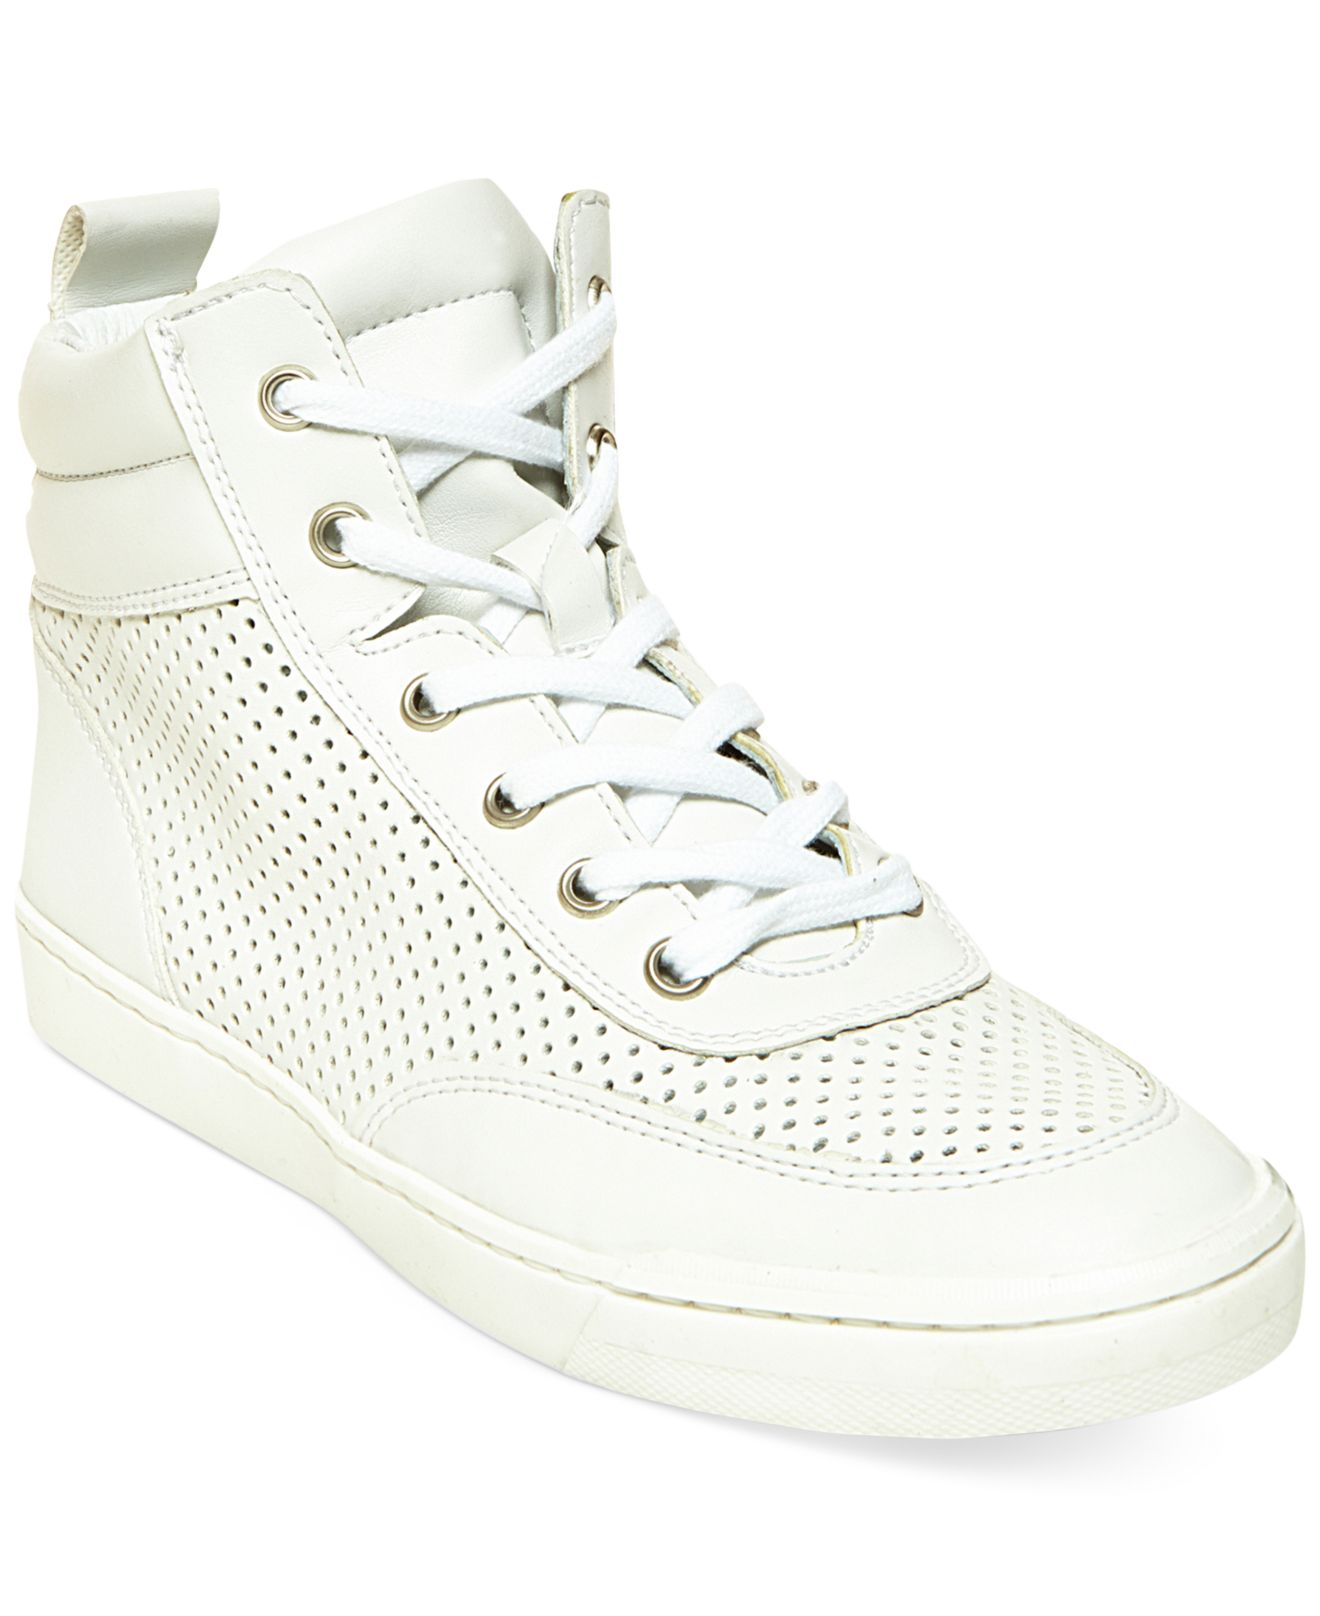 e1895c12a2e Lyst - Steve Madden Women s Mikeyy High Top Sneakers in White